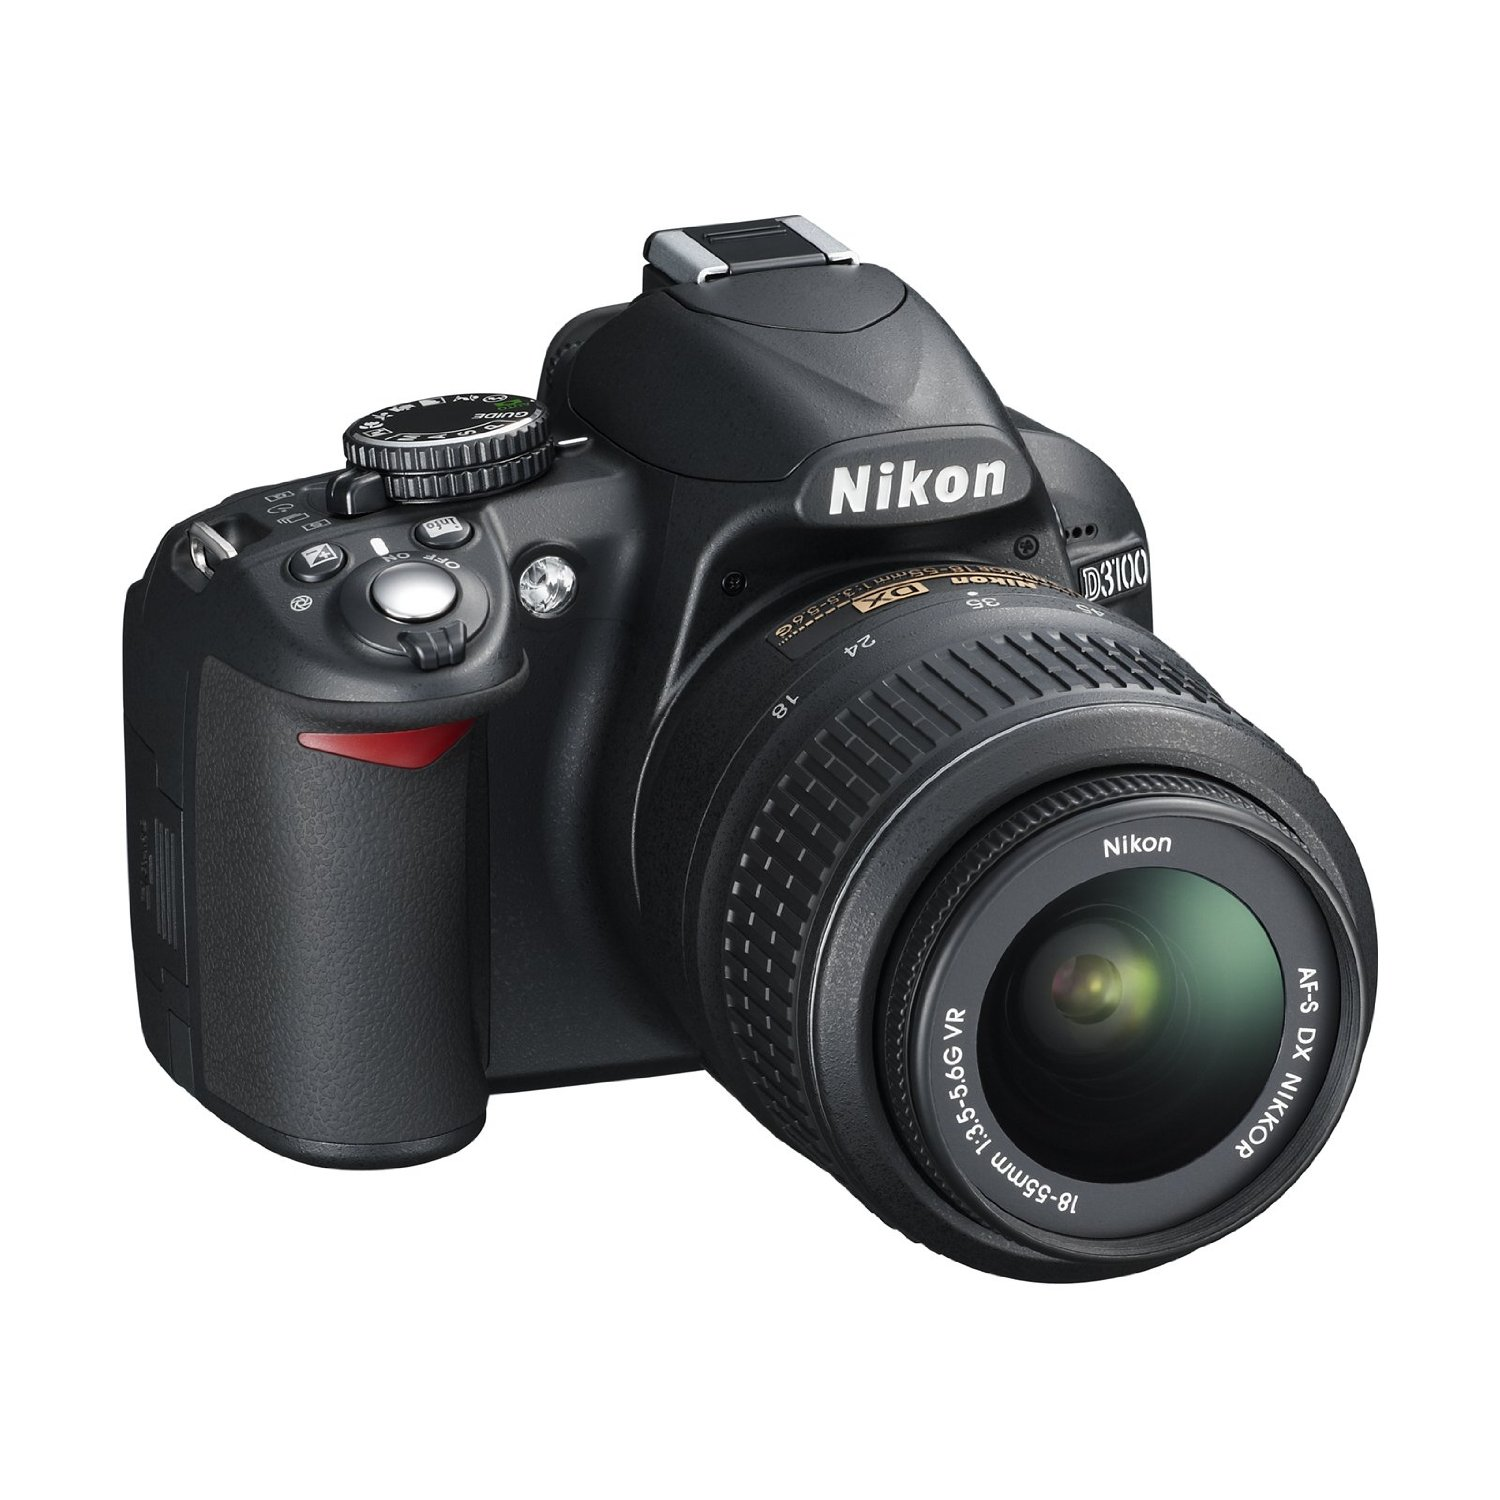 Nikon Digital SLR Camera D3100 14.2MP